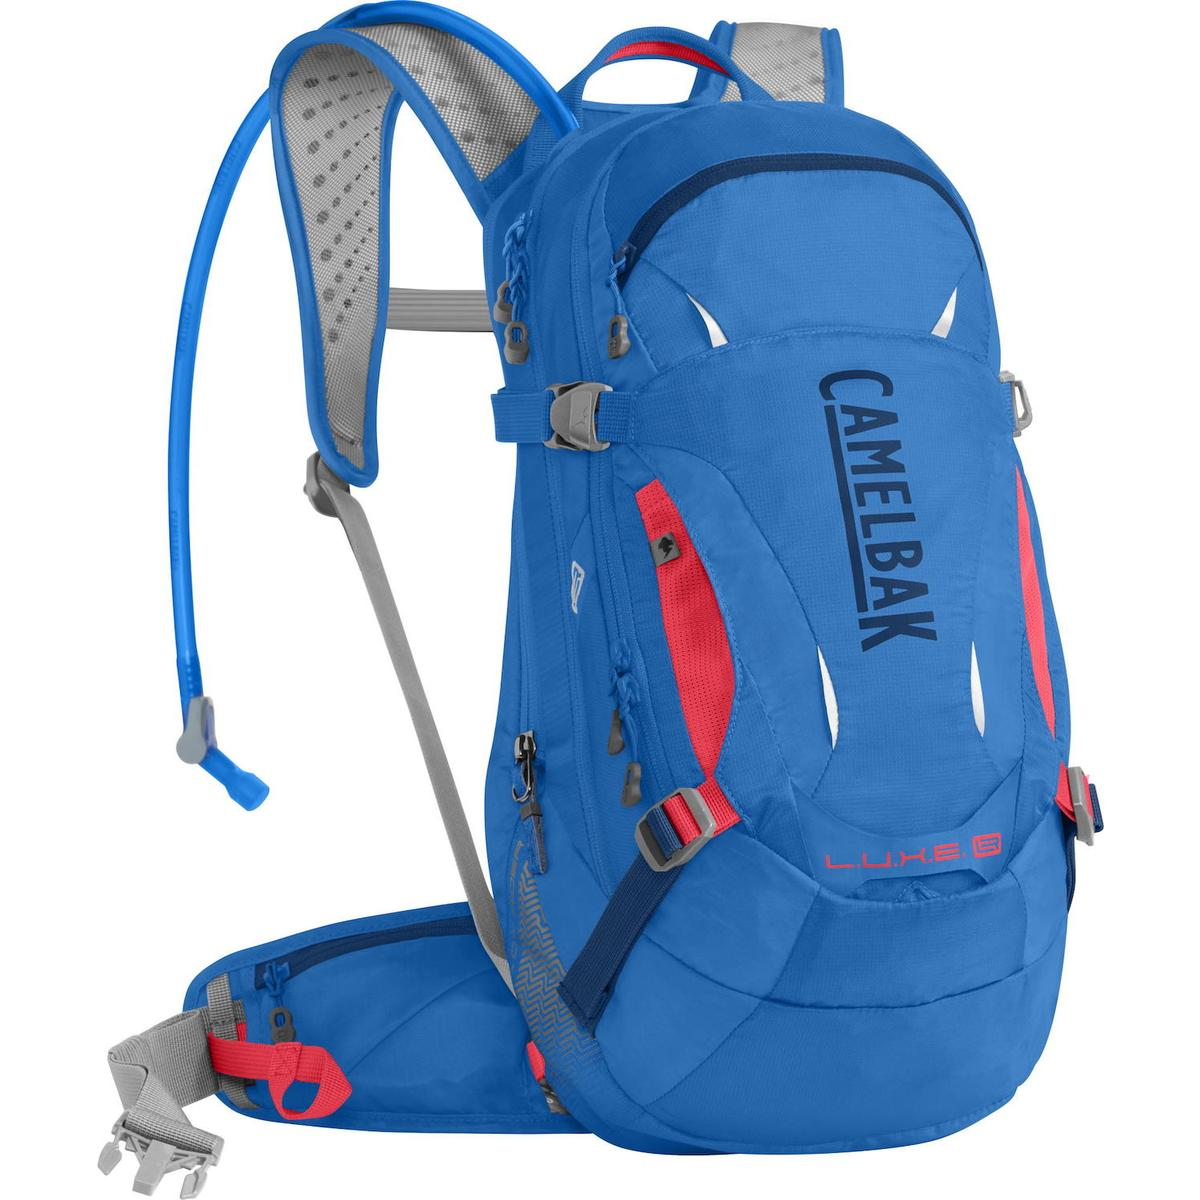 Camelbak LUXE LR 14 100oz Women's Hydration Pack